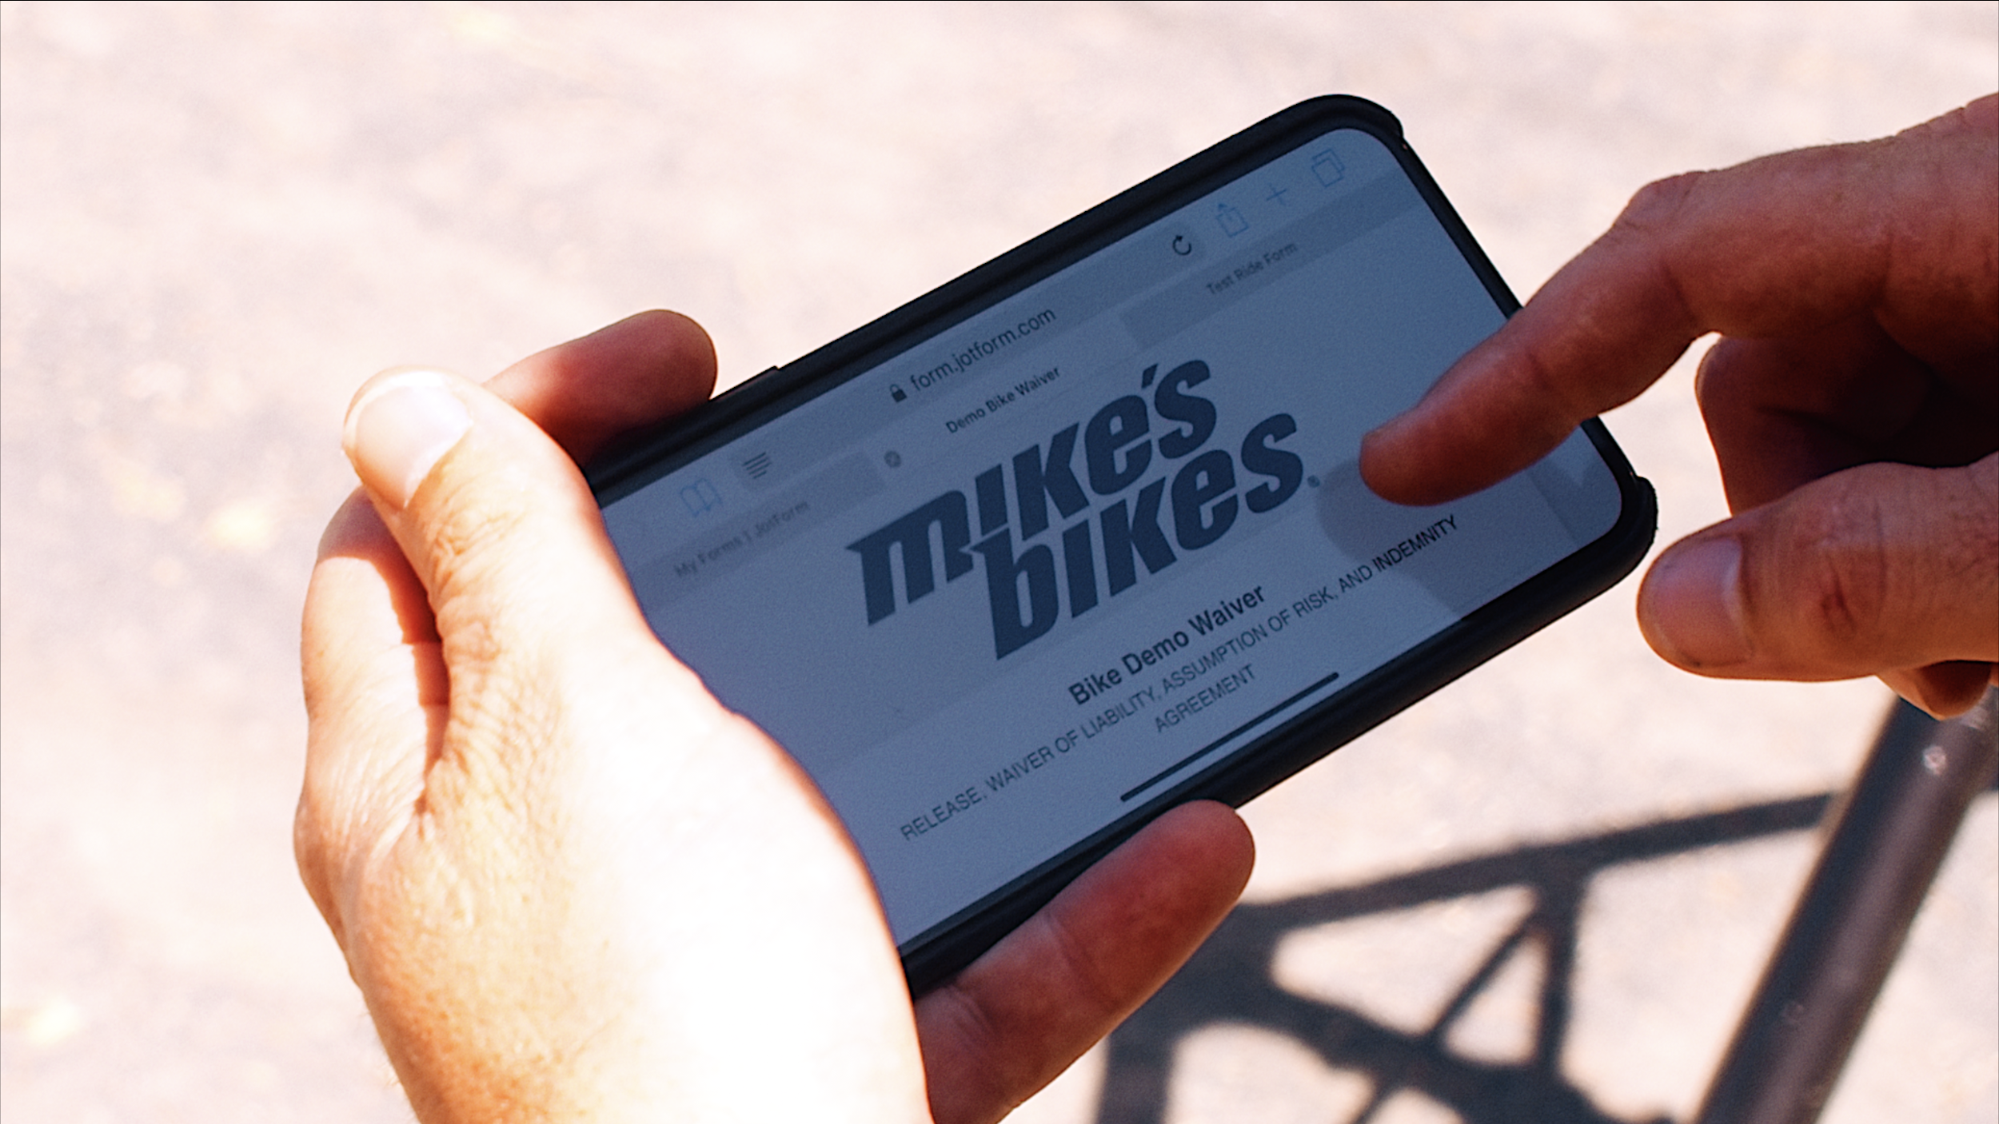 Mike's Bikes customer uses JotForm Mobile Forms remotely